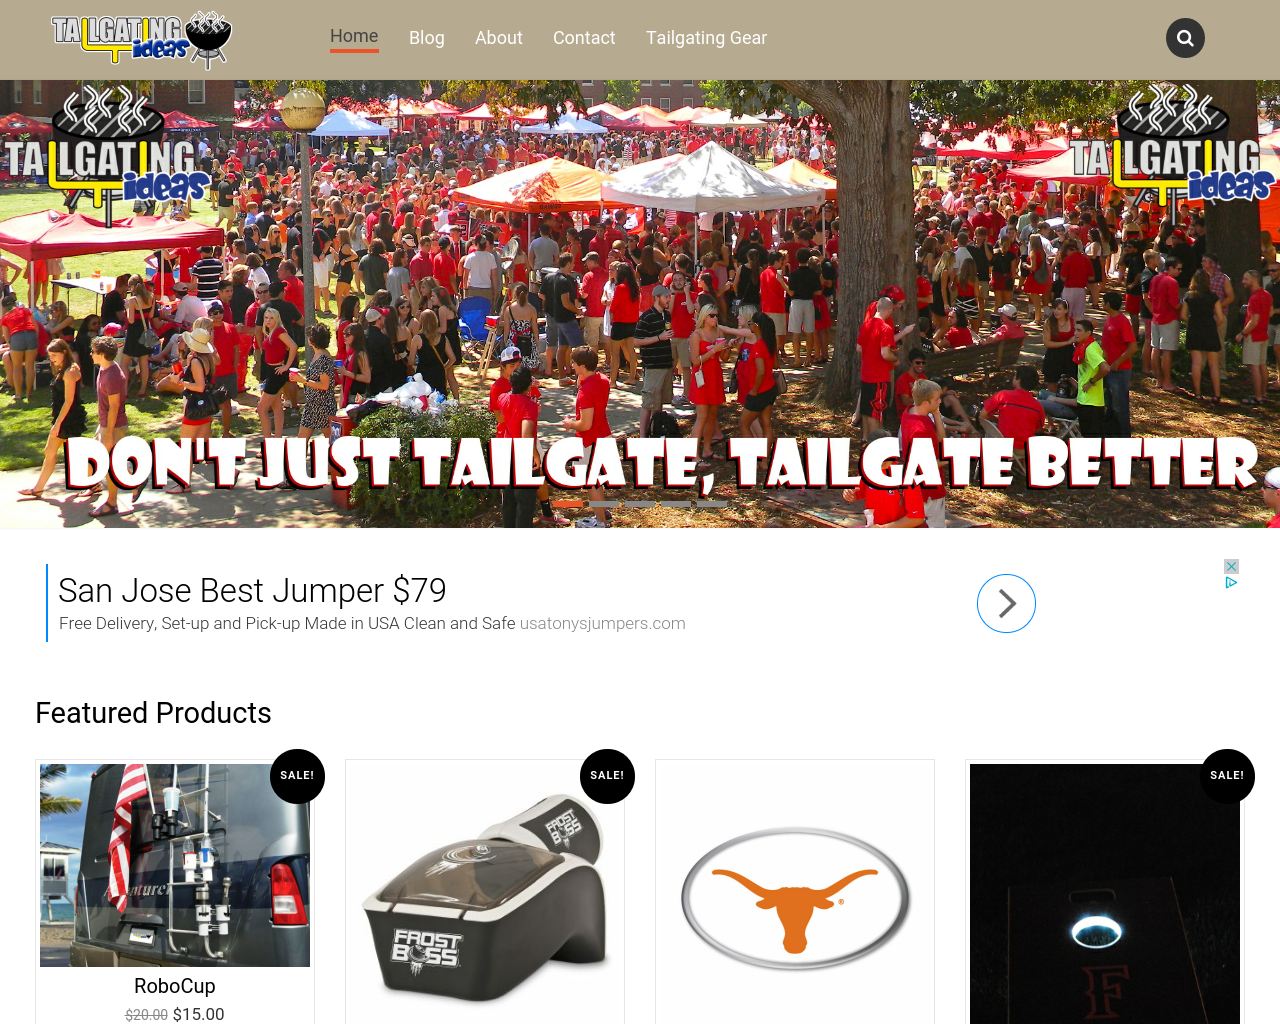 Tailgating-Ideas-Advertising-Reviews-Pricing